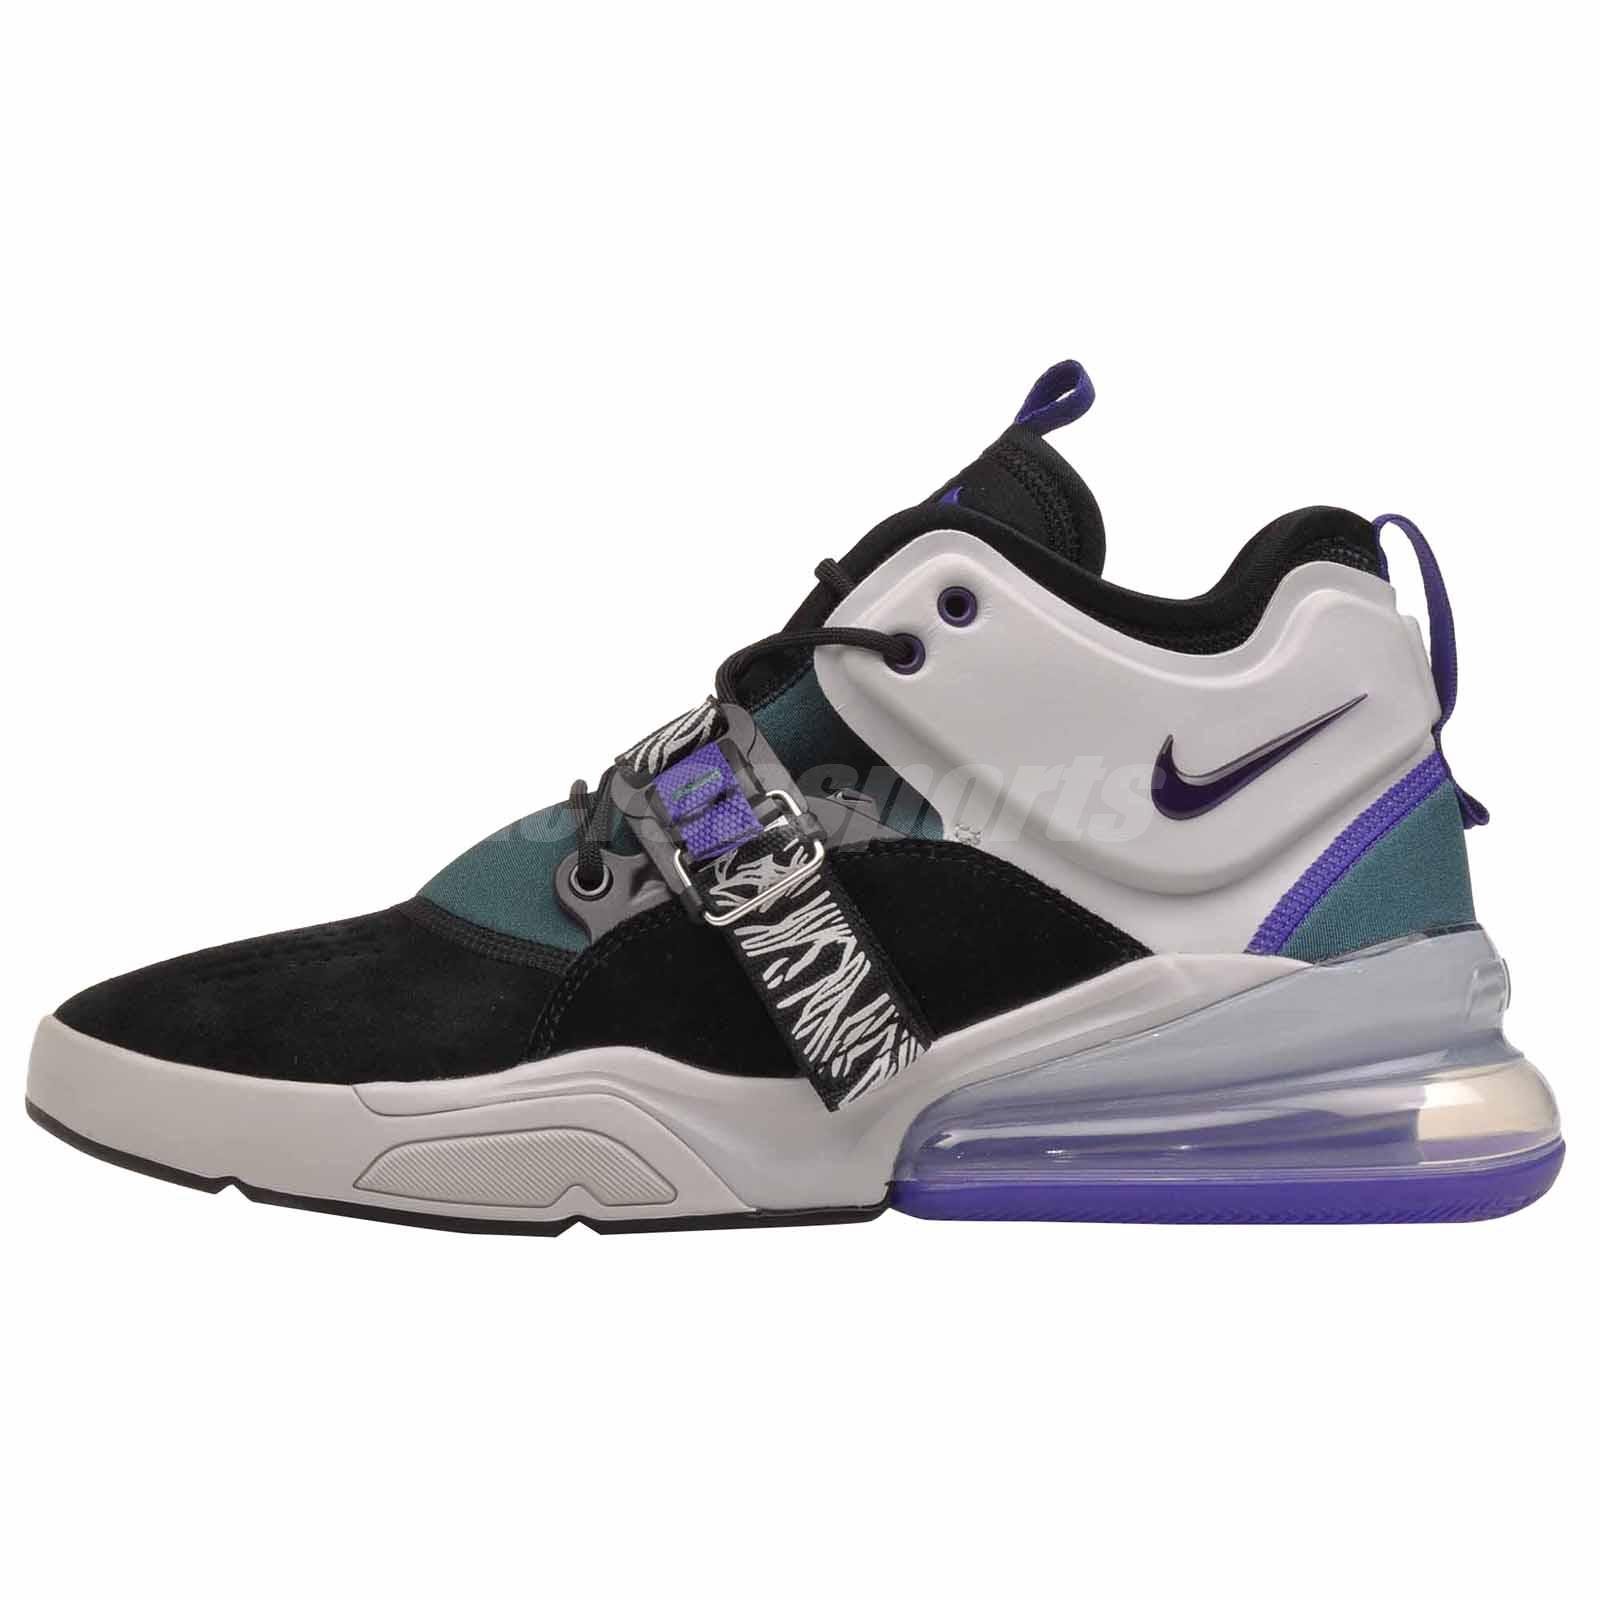 c04448831dcc69 Details about Nike Air Force 270 Basketball Mens Shoes Black Purple NWOB  AH6772-005